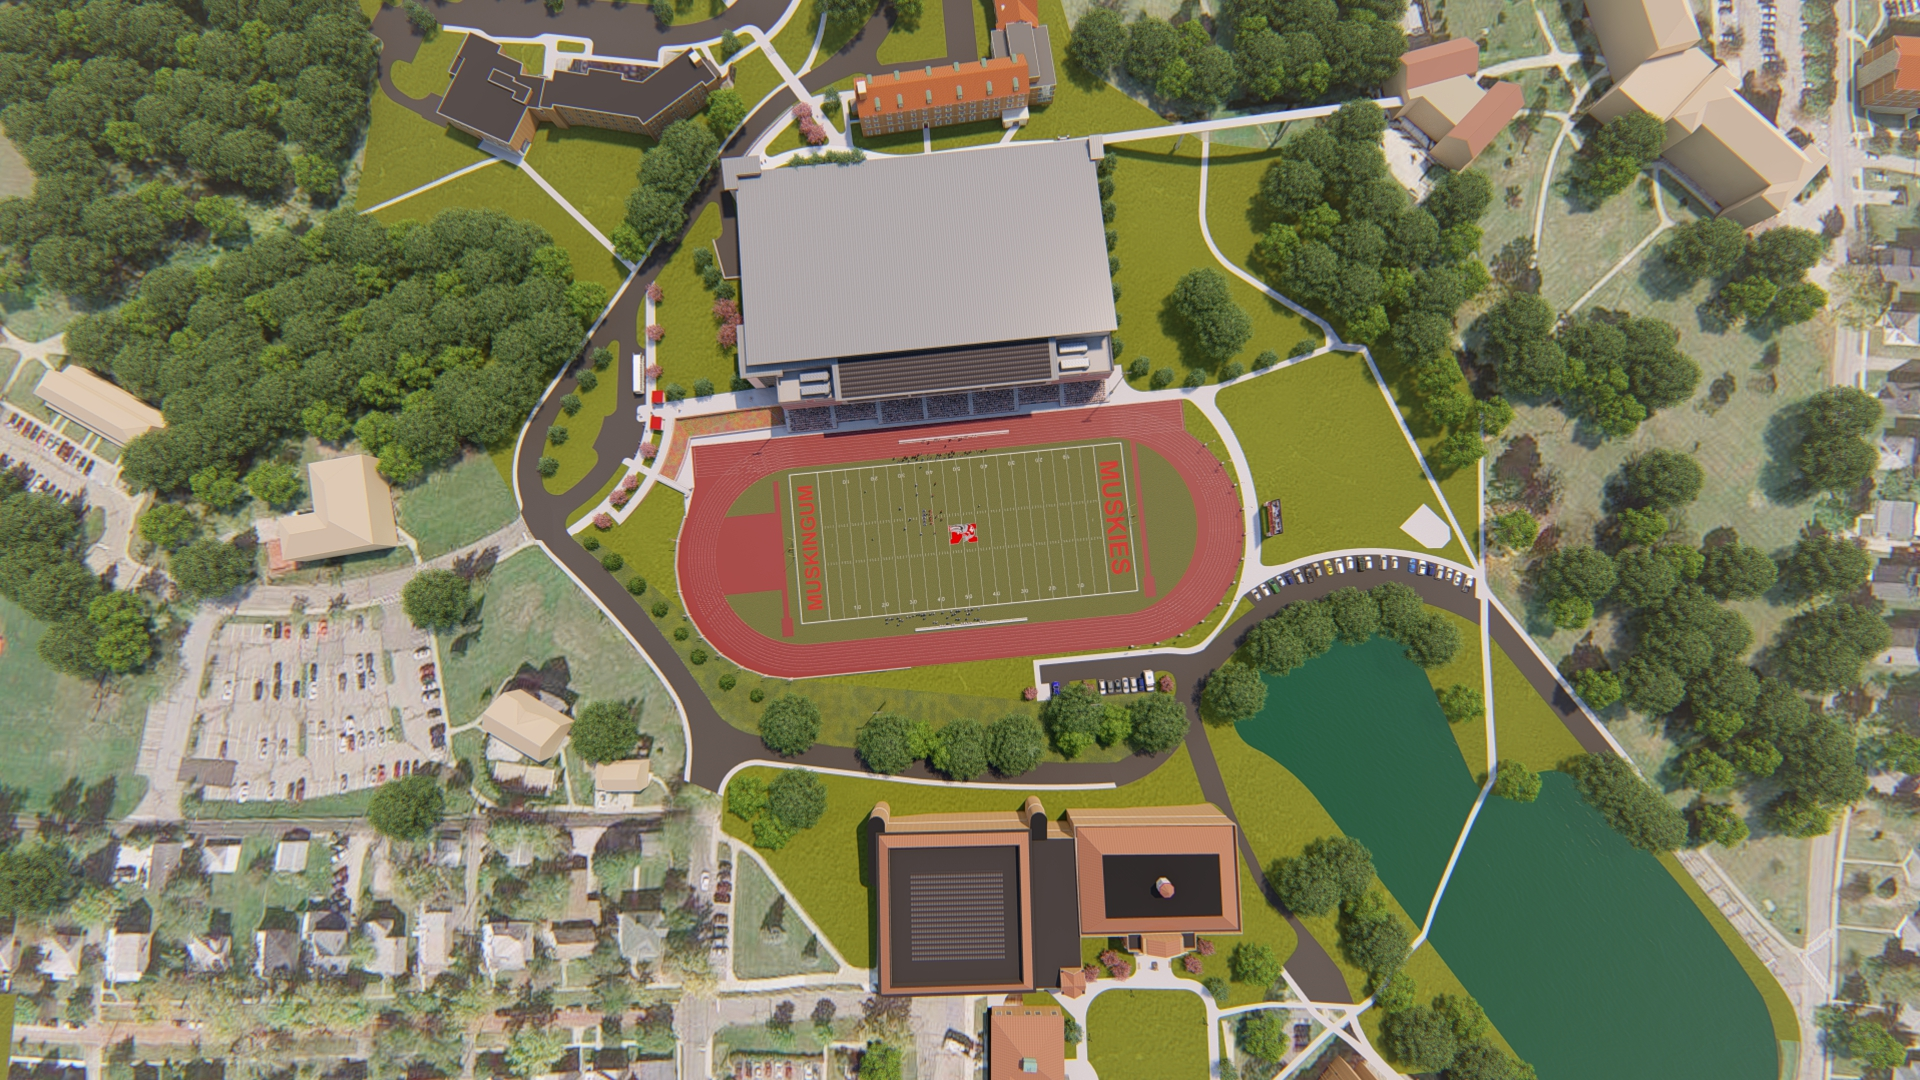 birds eye view rendering of the new HWC